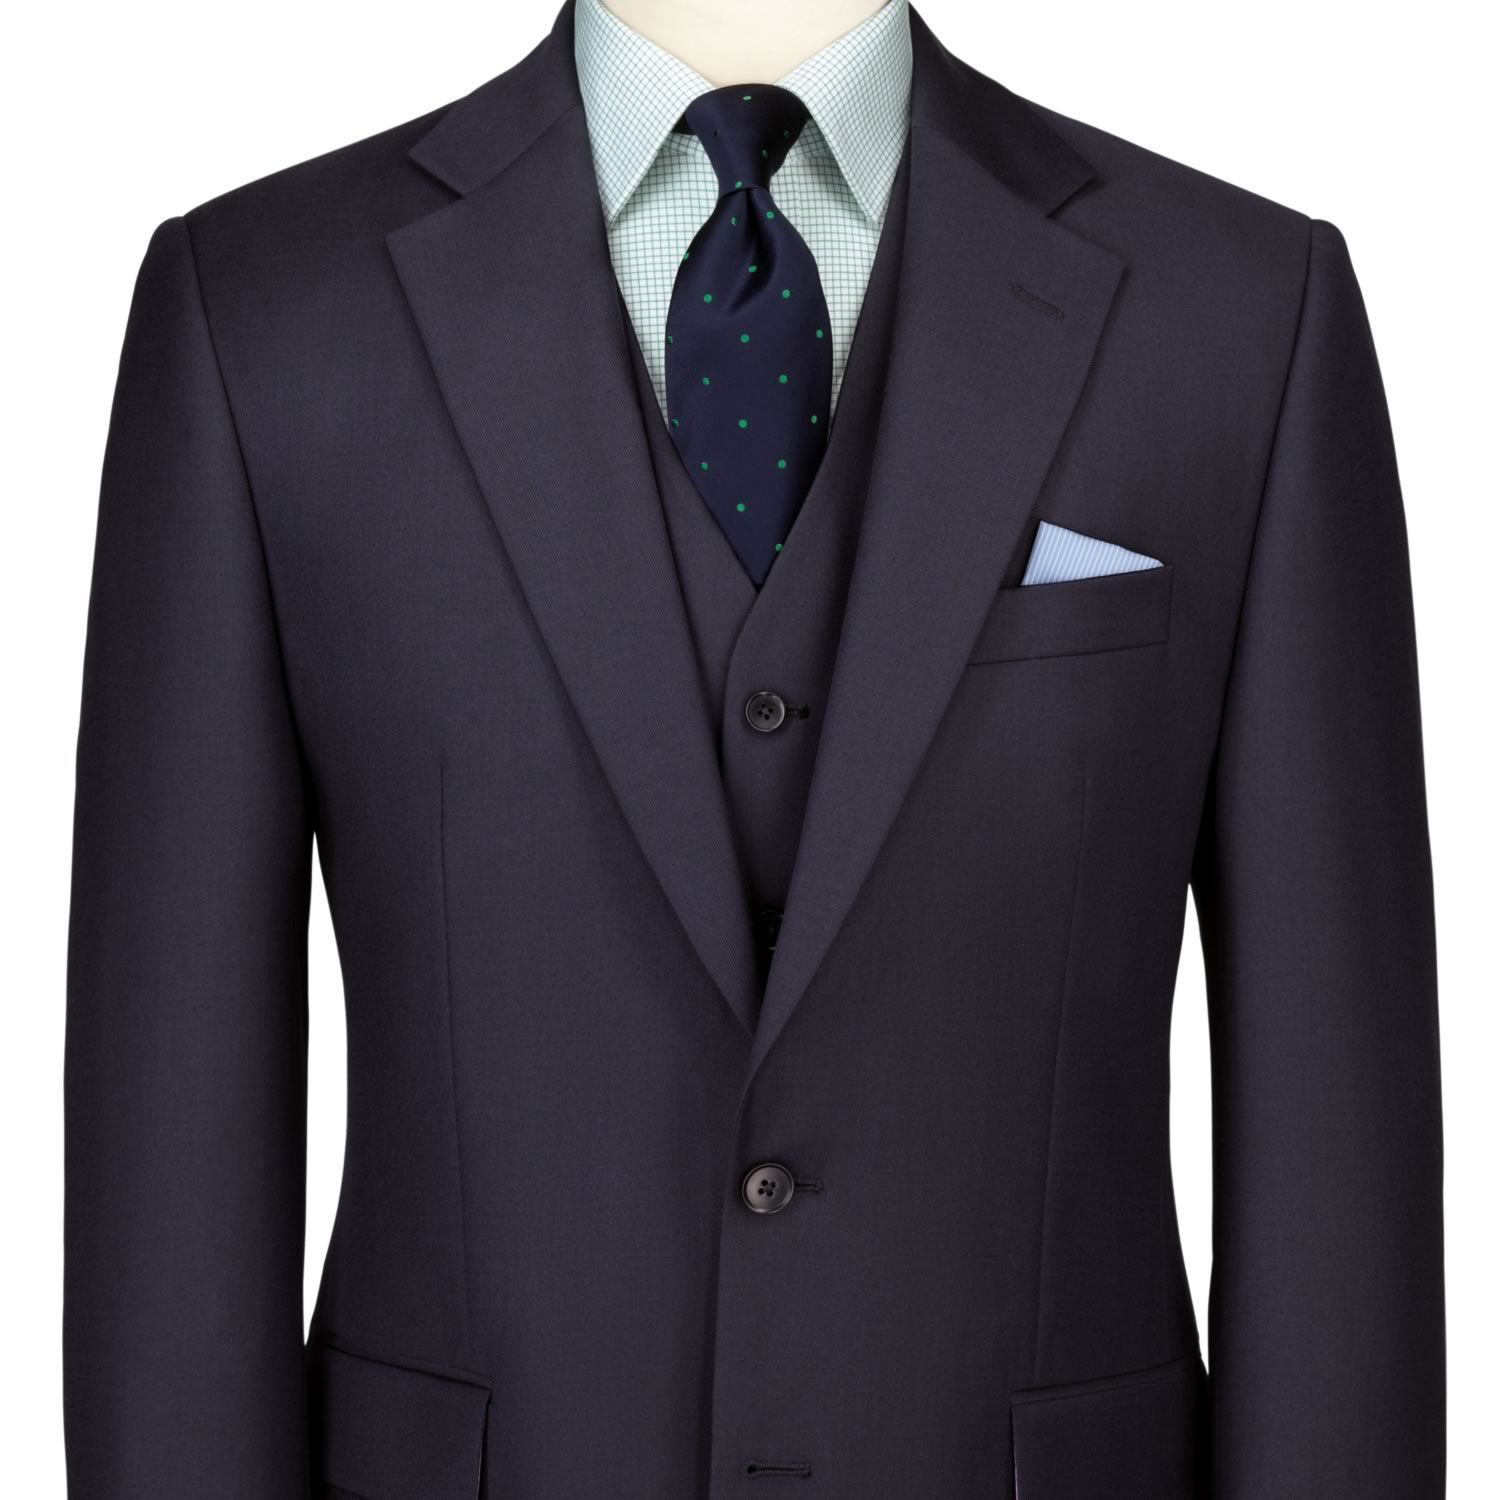 Navy twill classic fit suit | Men's business suits from ...